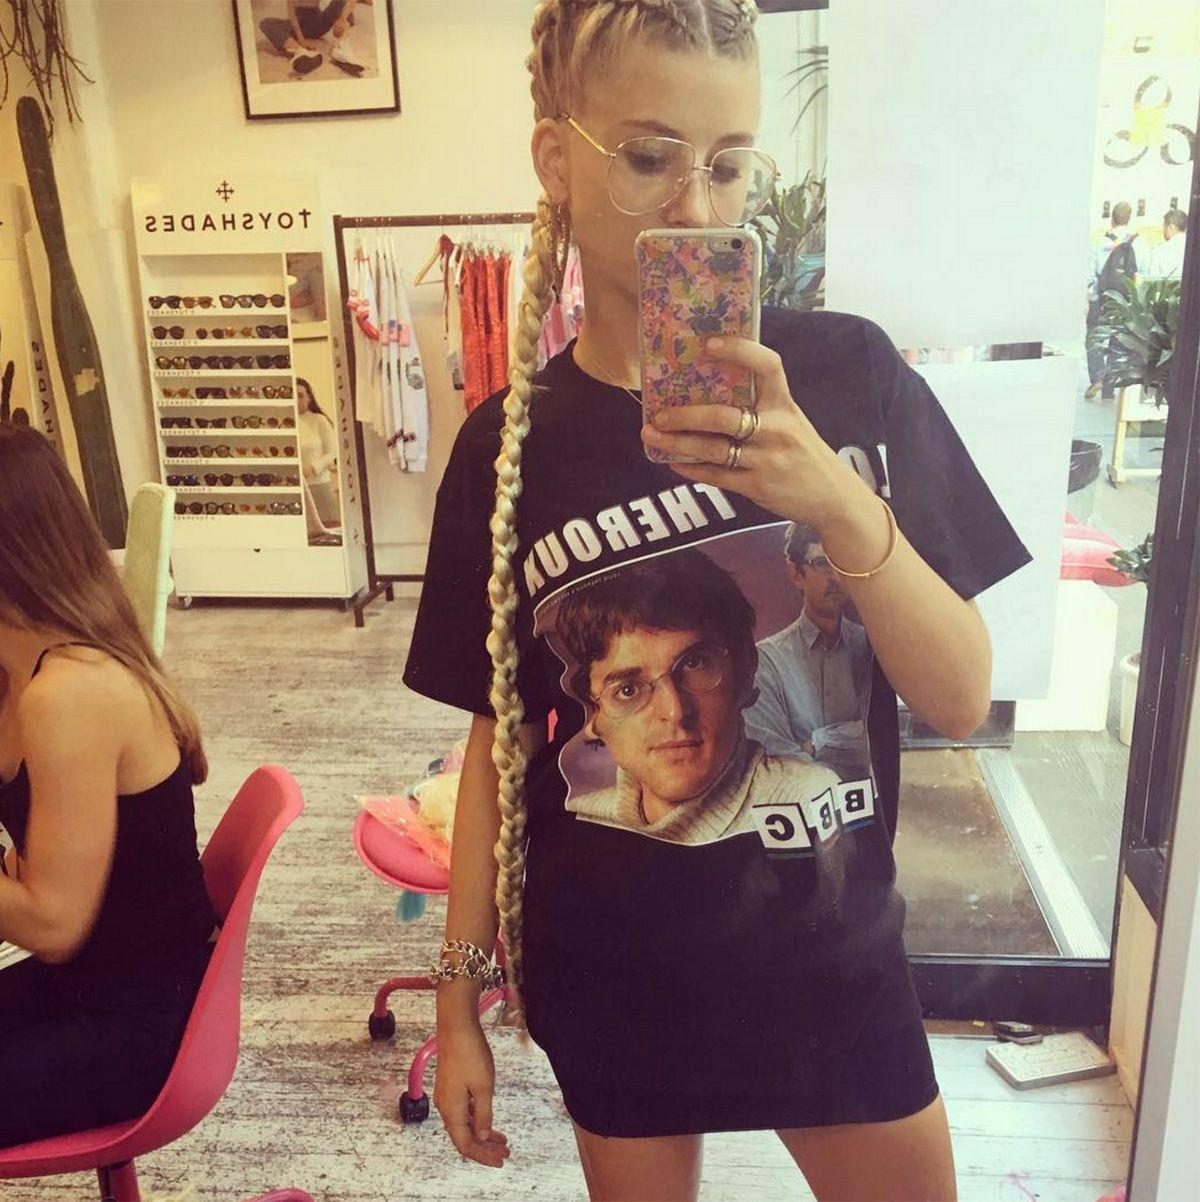 """<p><strong>The Bum-Sweeping Braids</strong></p> <p>If you're looking for the best braids in <span>town</span> head to <a href=""""https://www.instagram.com/keashbraids/"""" rel=""""nofollow noopener"""" target=""""_blank"""" data-ylk=""""slk:Keash Braids"""" class=""""link rapid-noclick-resp"""">Keash Braids</a>, where you can get Rapunzel plaits like <a href=""""www.instagram.com/phoebelettice"""" data-ylk=""""slk:Phoebe Lettice"""" class=""""link rapid-noclick-resp"""">Phoebe Lettice</a>, multi-coloured corn rows and countless more complicated designs.</p> <span class=""""copyright"""">Photo: via @phoebelettice.</span>"""